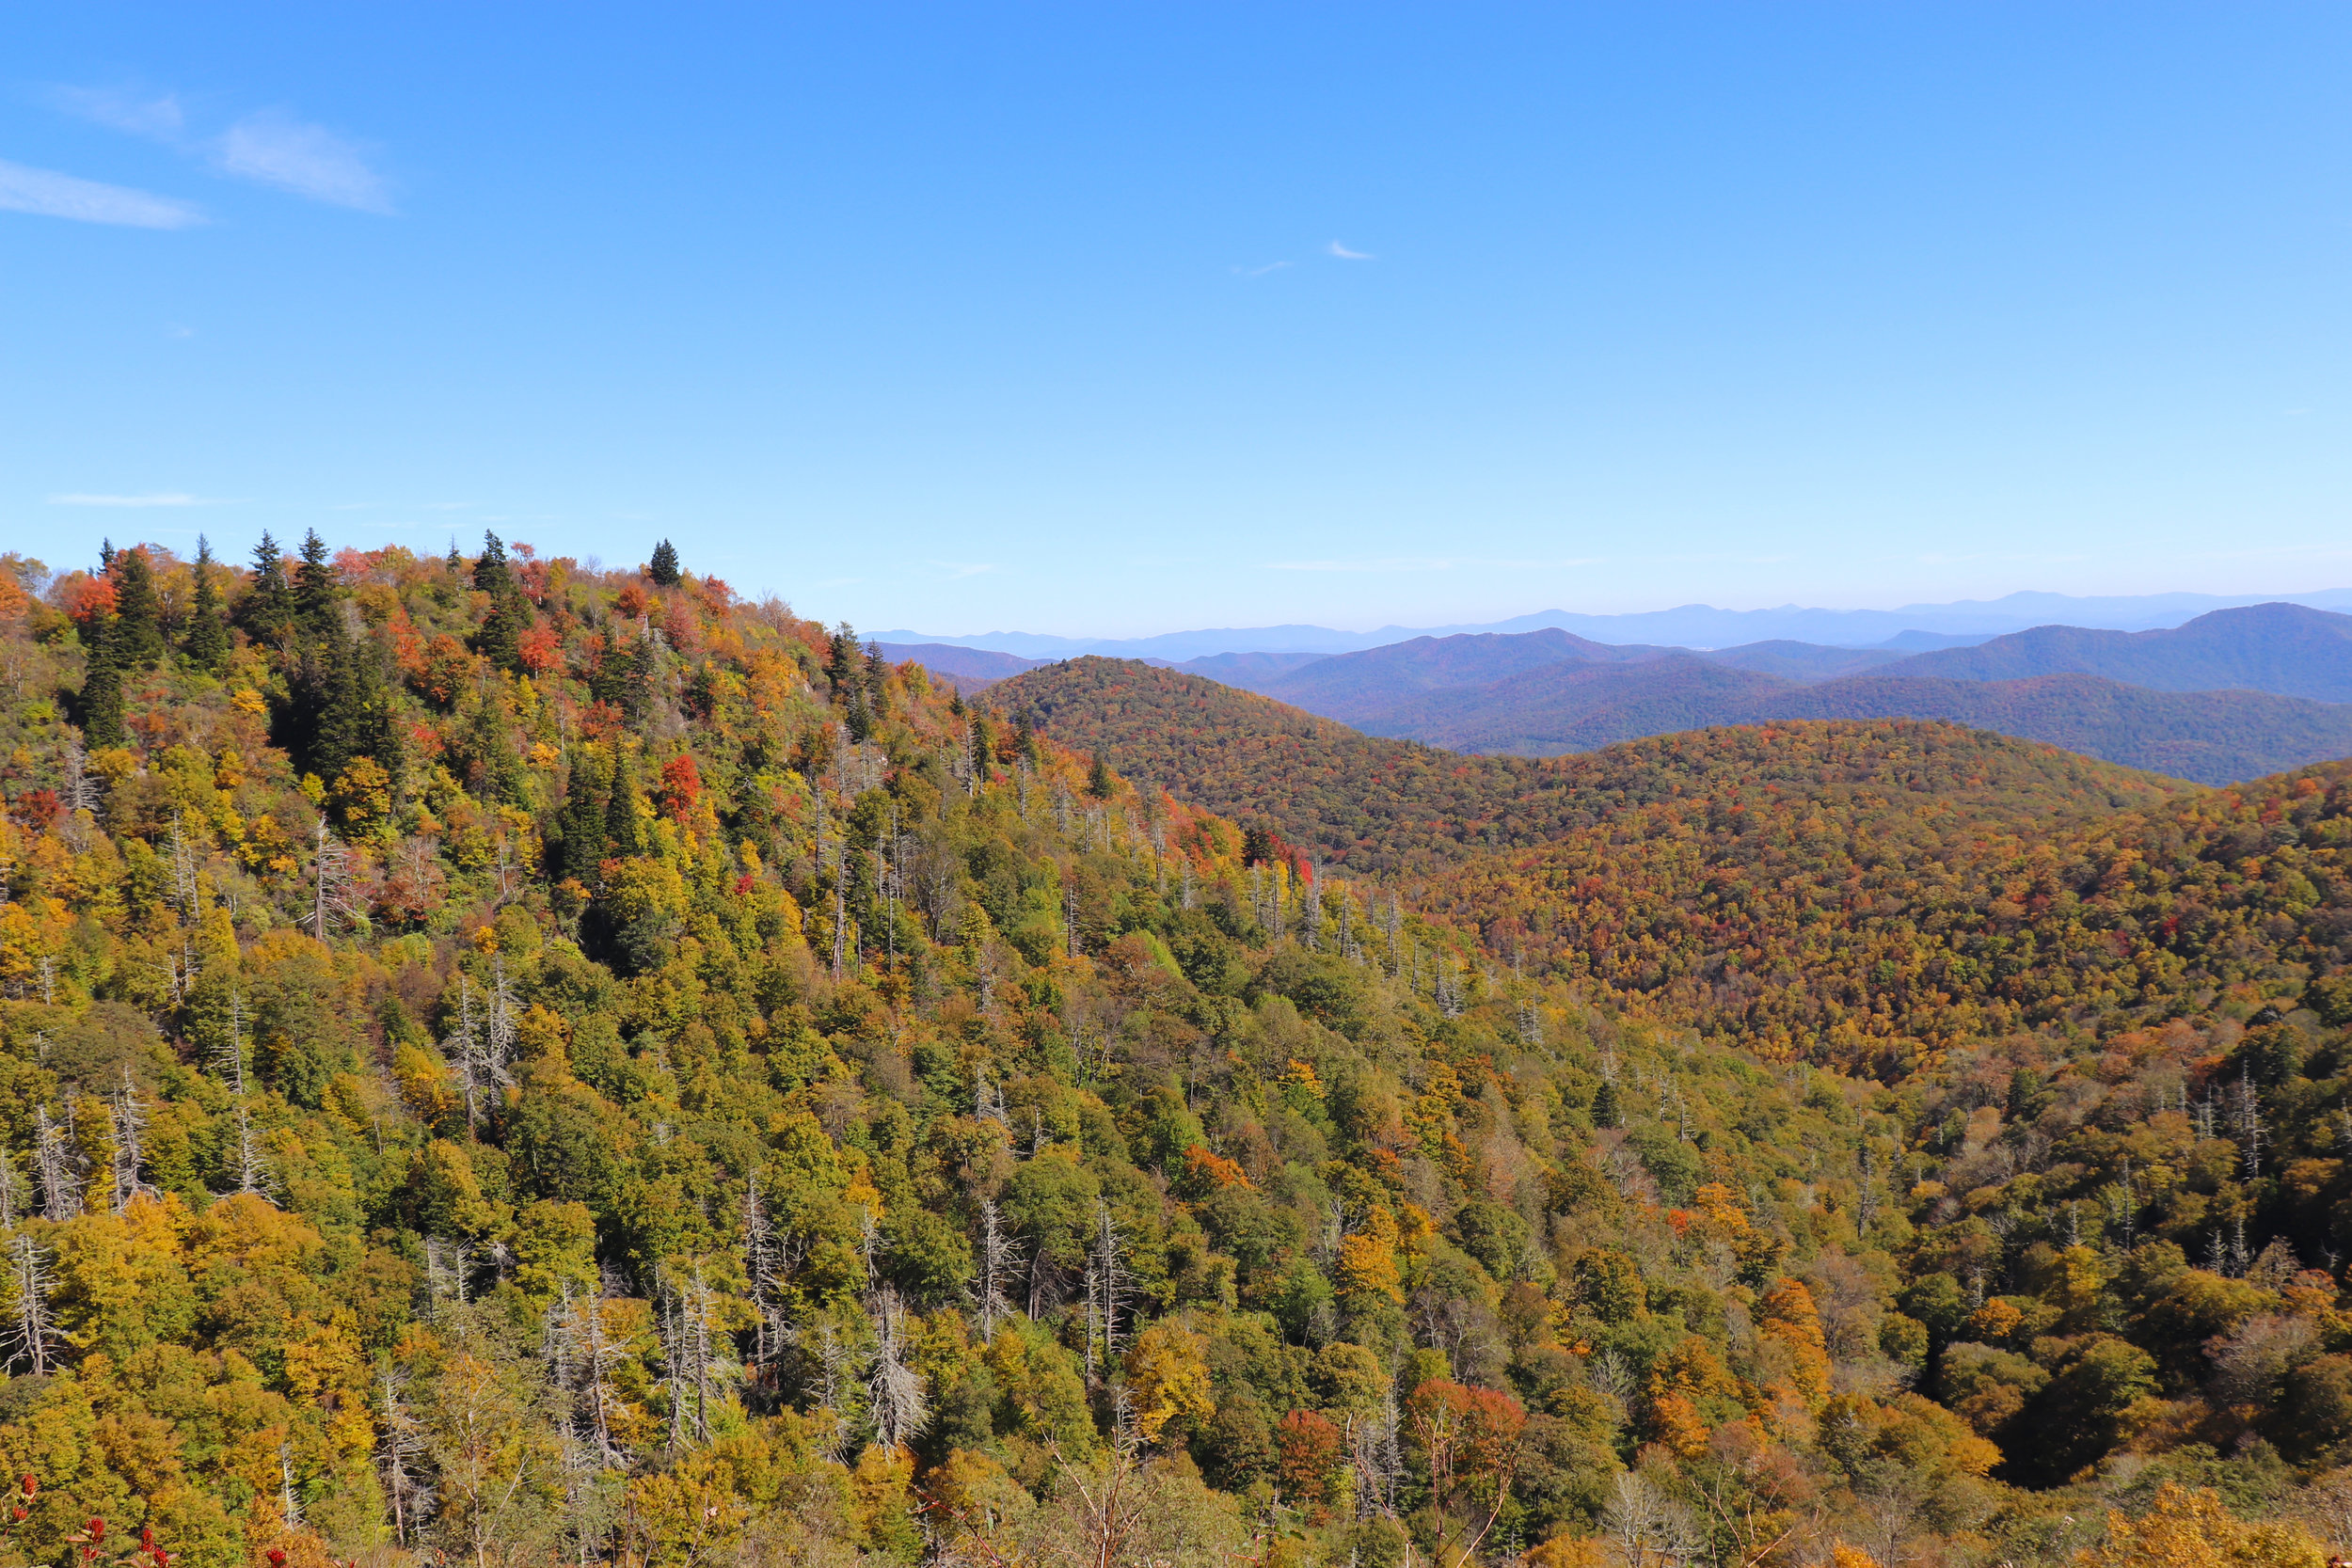 Autumn-Fall-Foliage-Asheville-North-Carolina.jpg